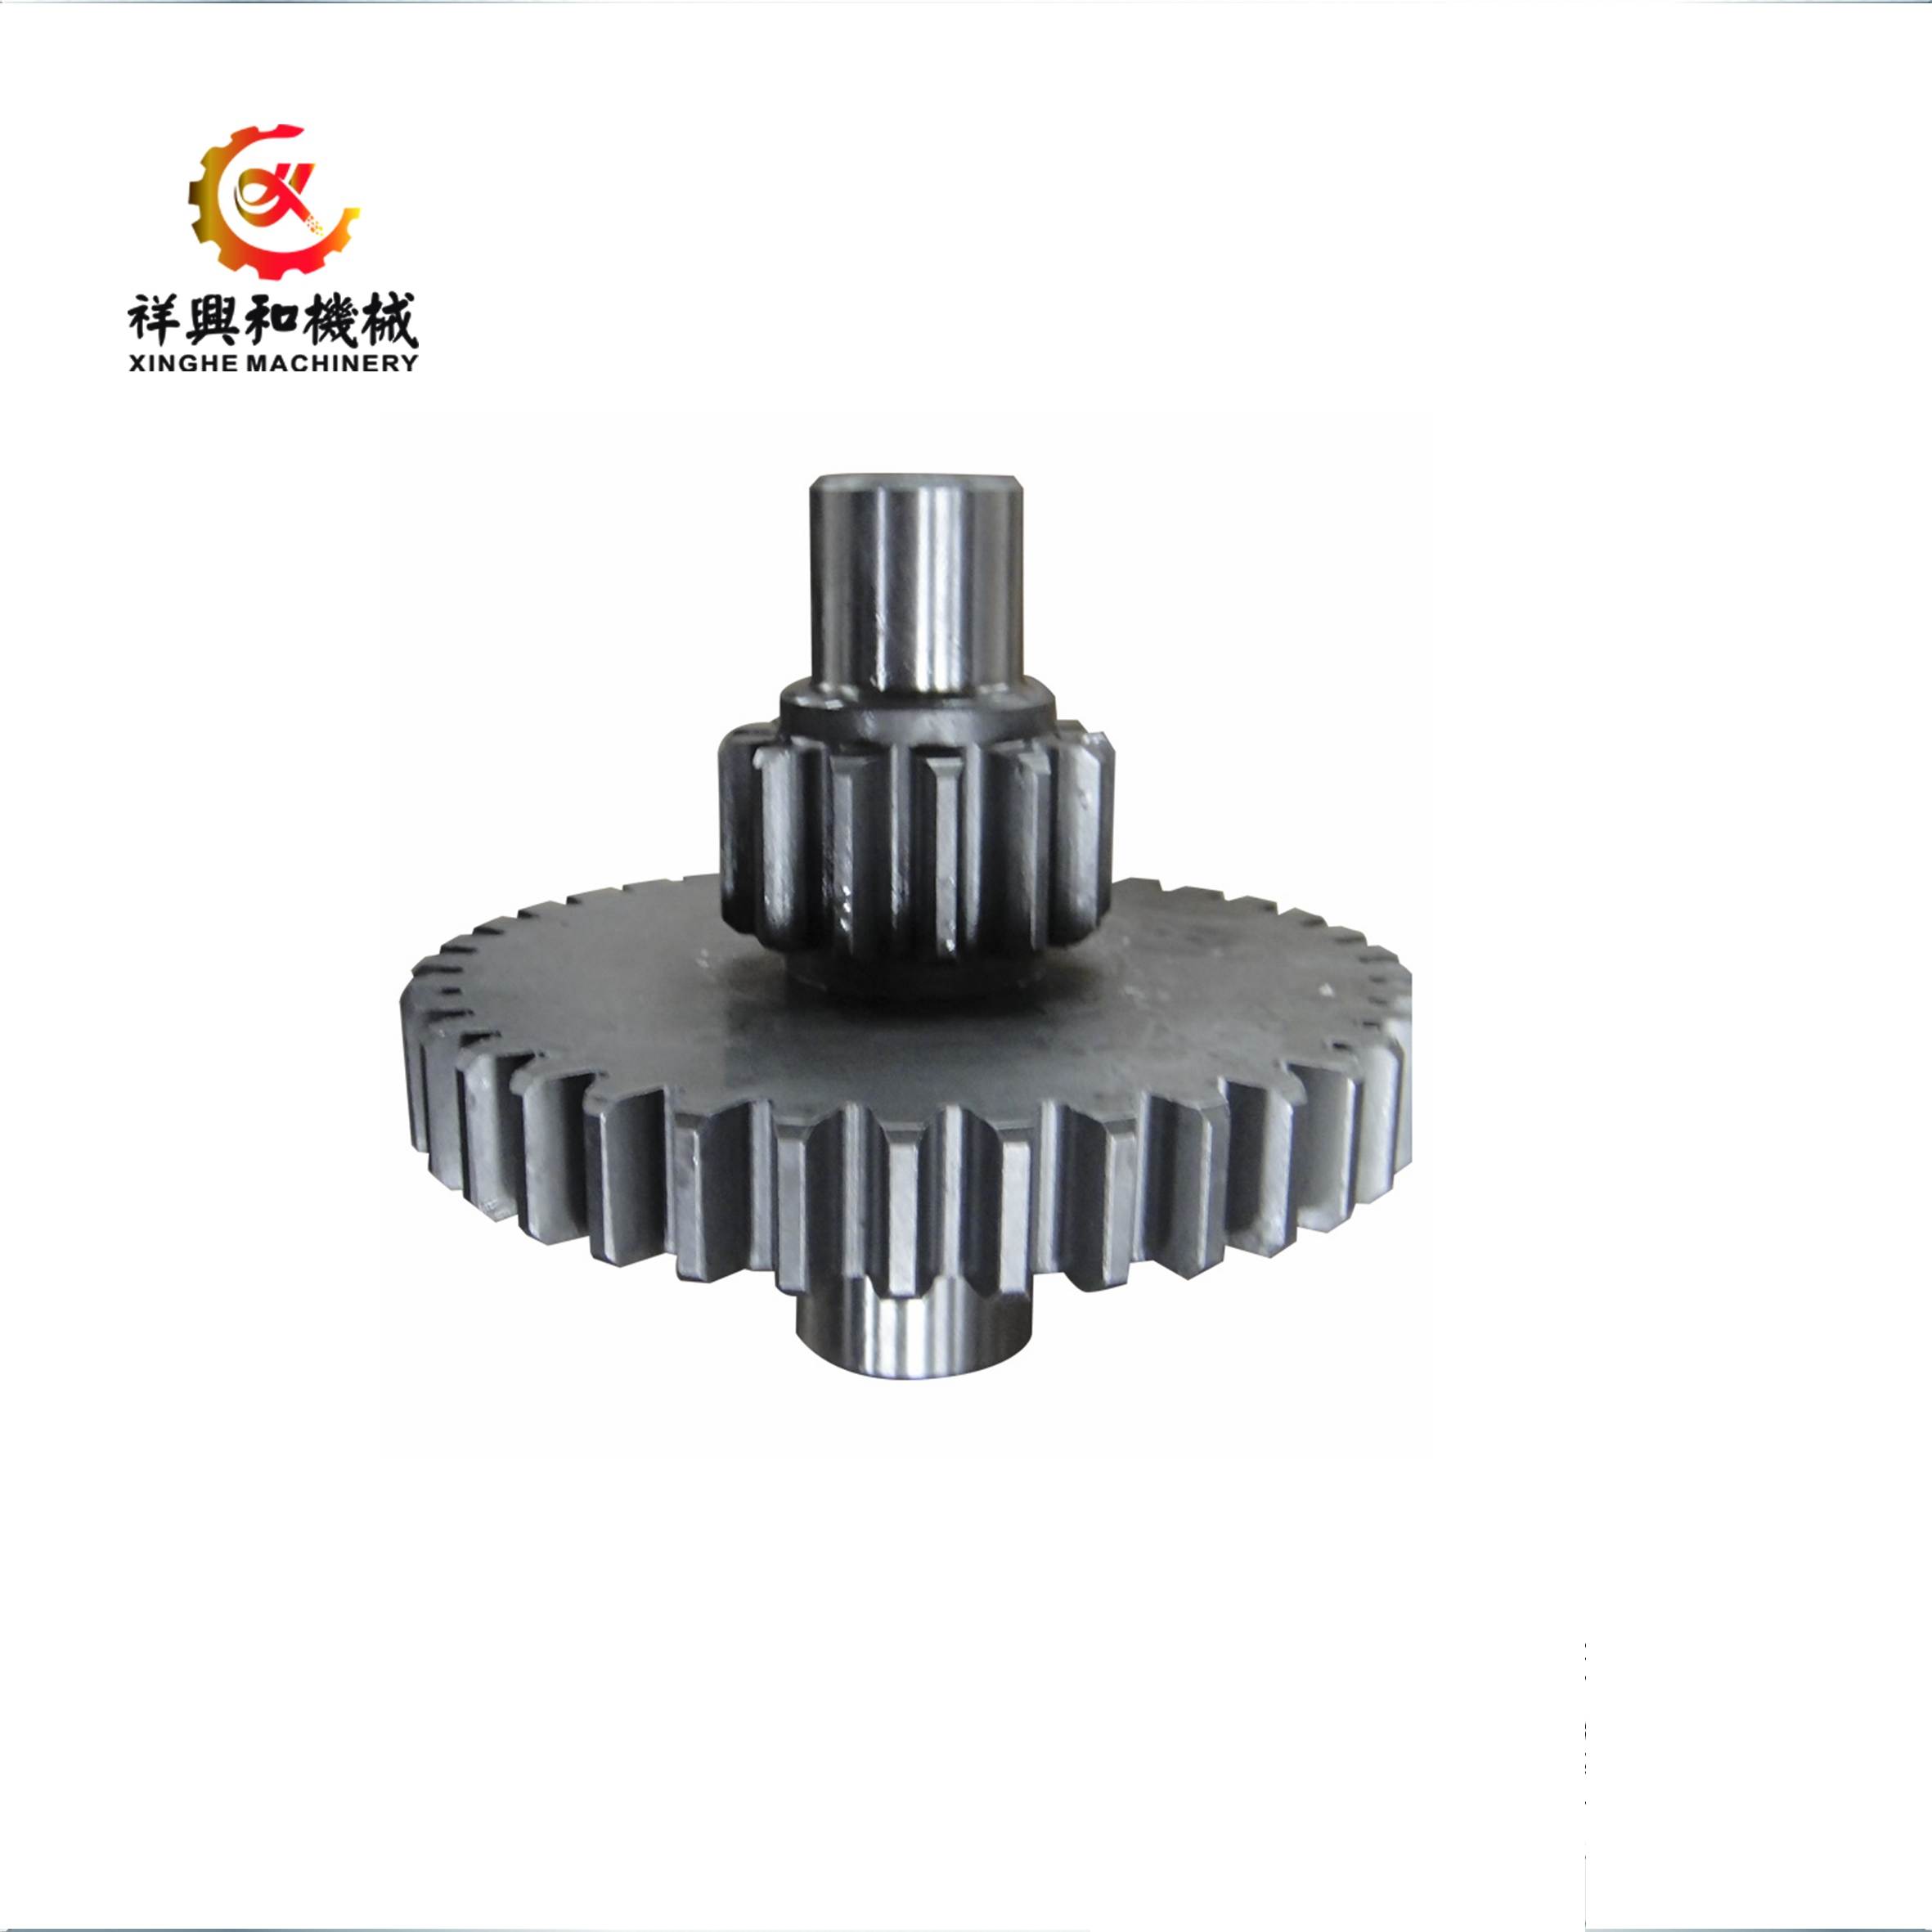 OEM foundry casting stainless steel gears shell casting for auto parts micro pinion gear